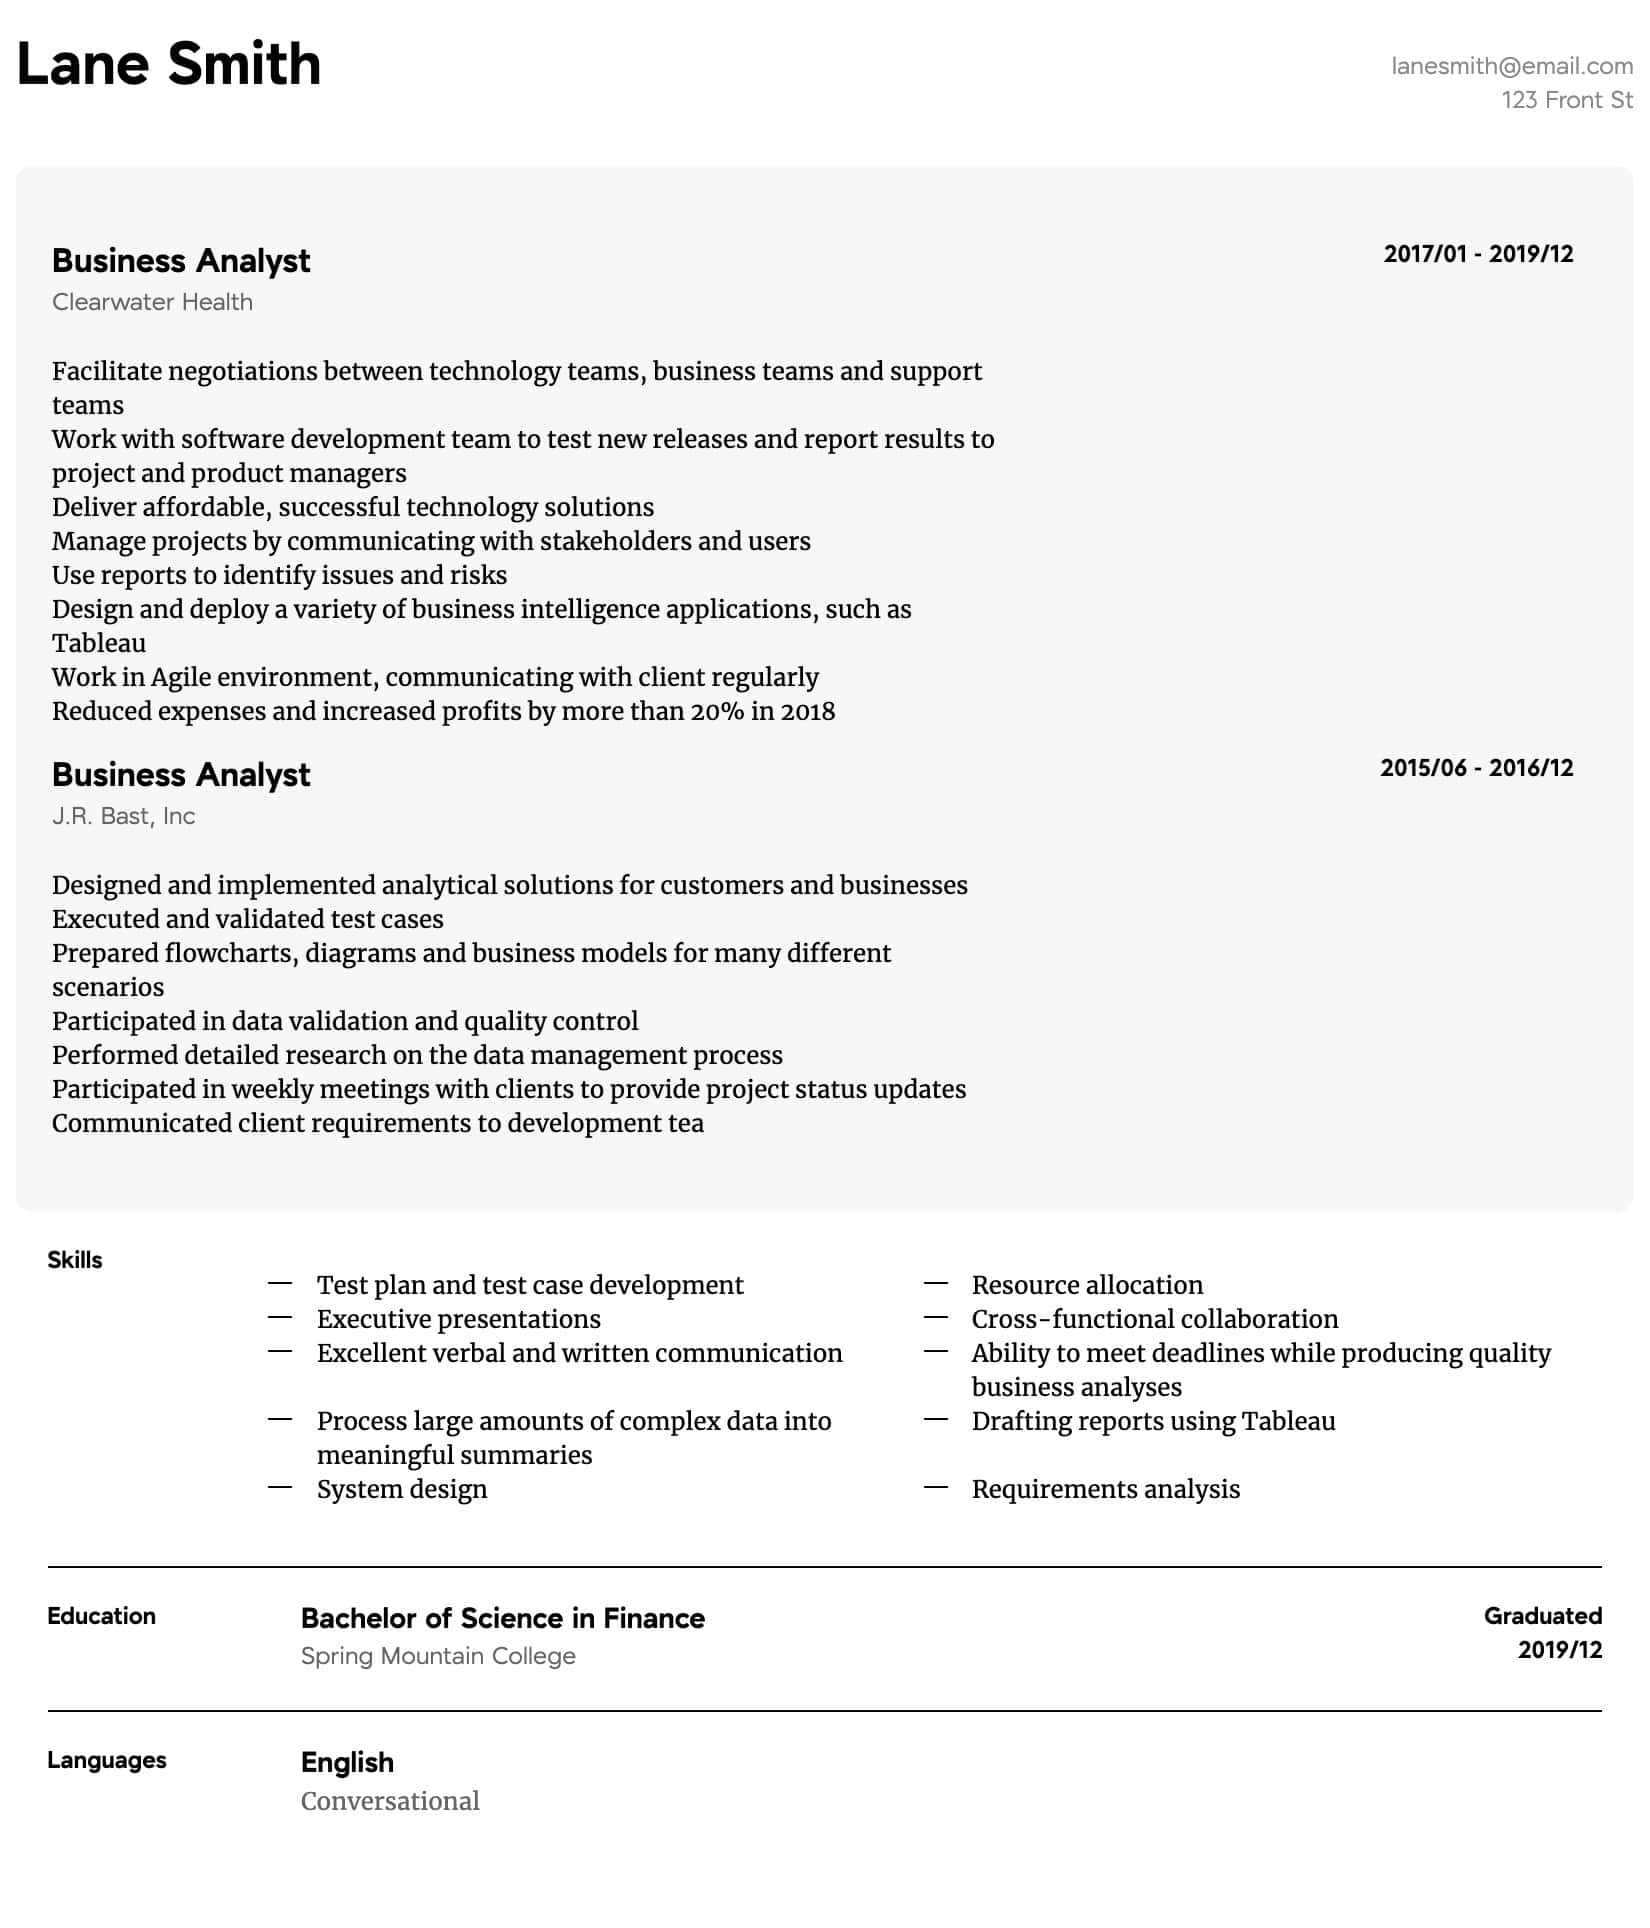 Business Analyst Resume Samples All Experience Levels Resume Com Resume Com